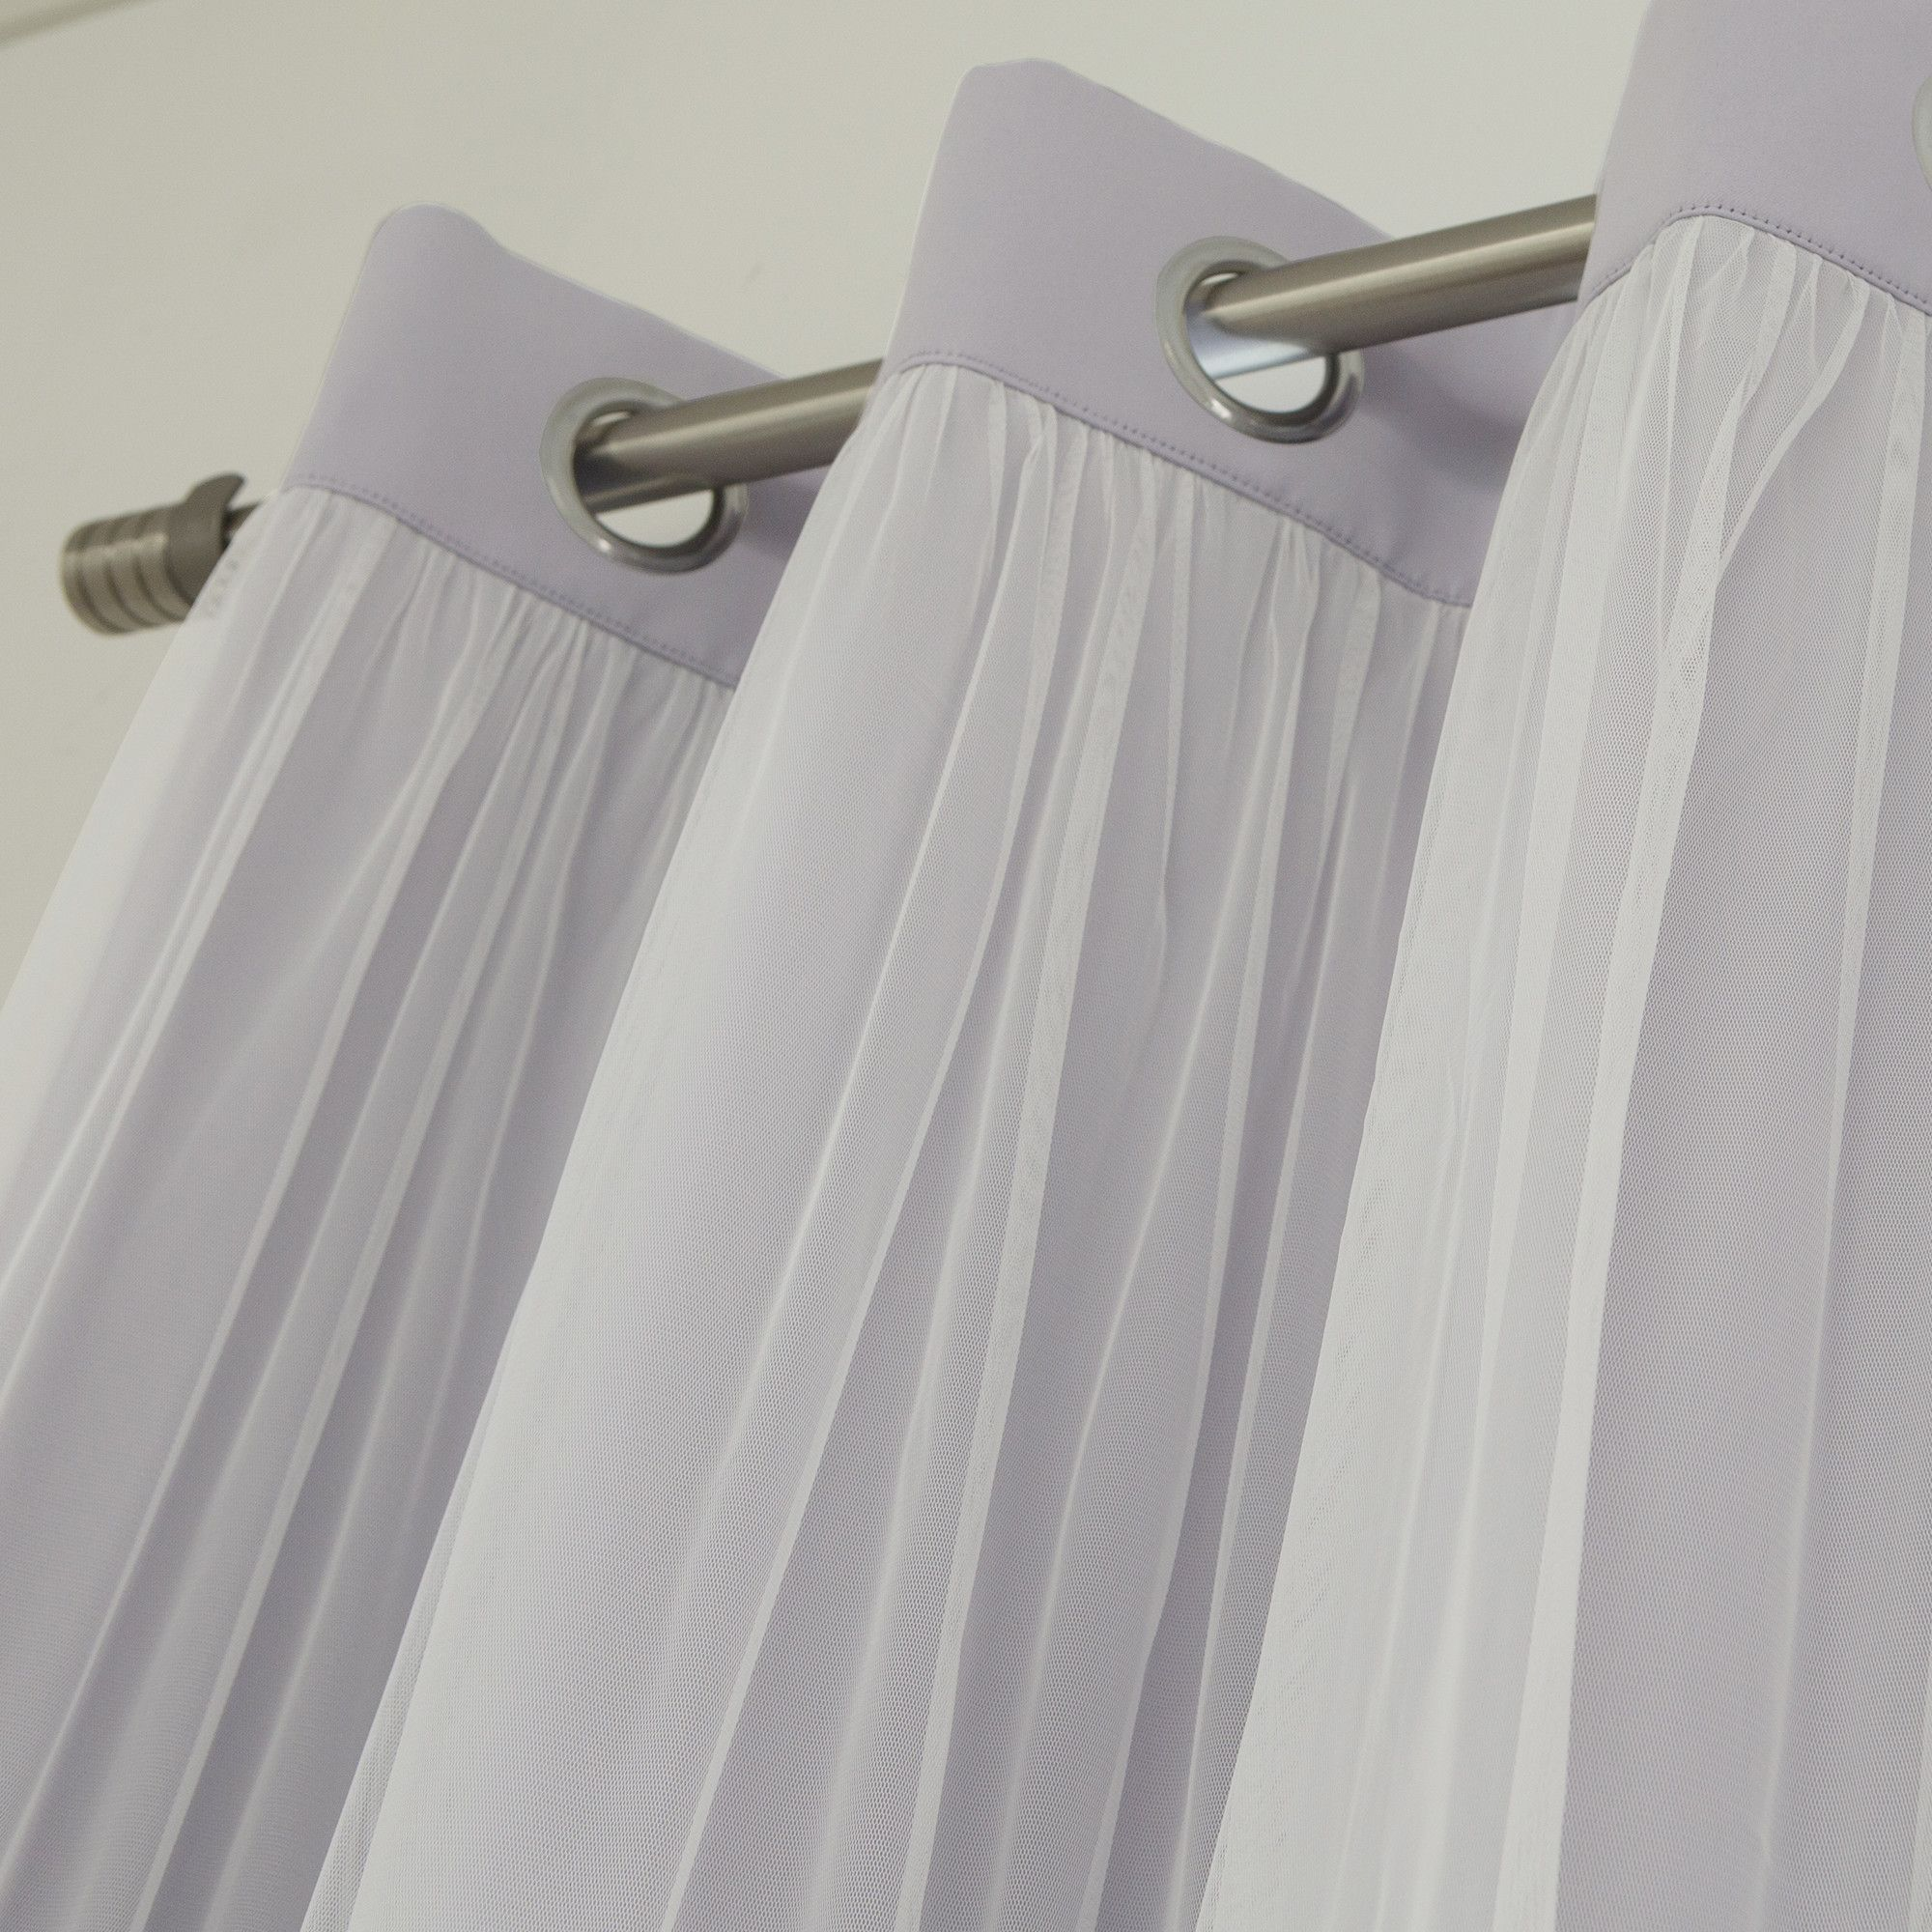 wayfair white cottage and stripe valances drapery copper of drapes navy panels curtain draperies or rods purple full kohls country custom curtains french size